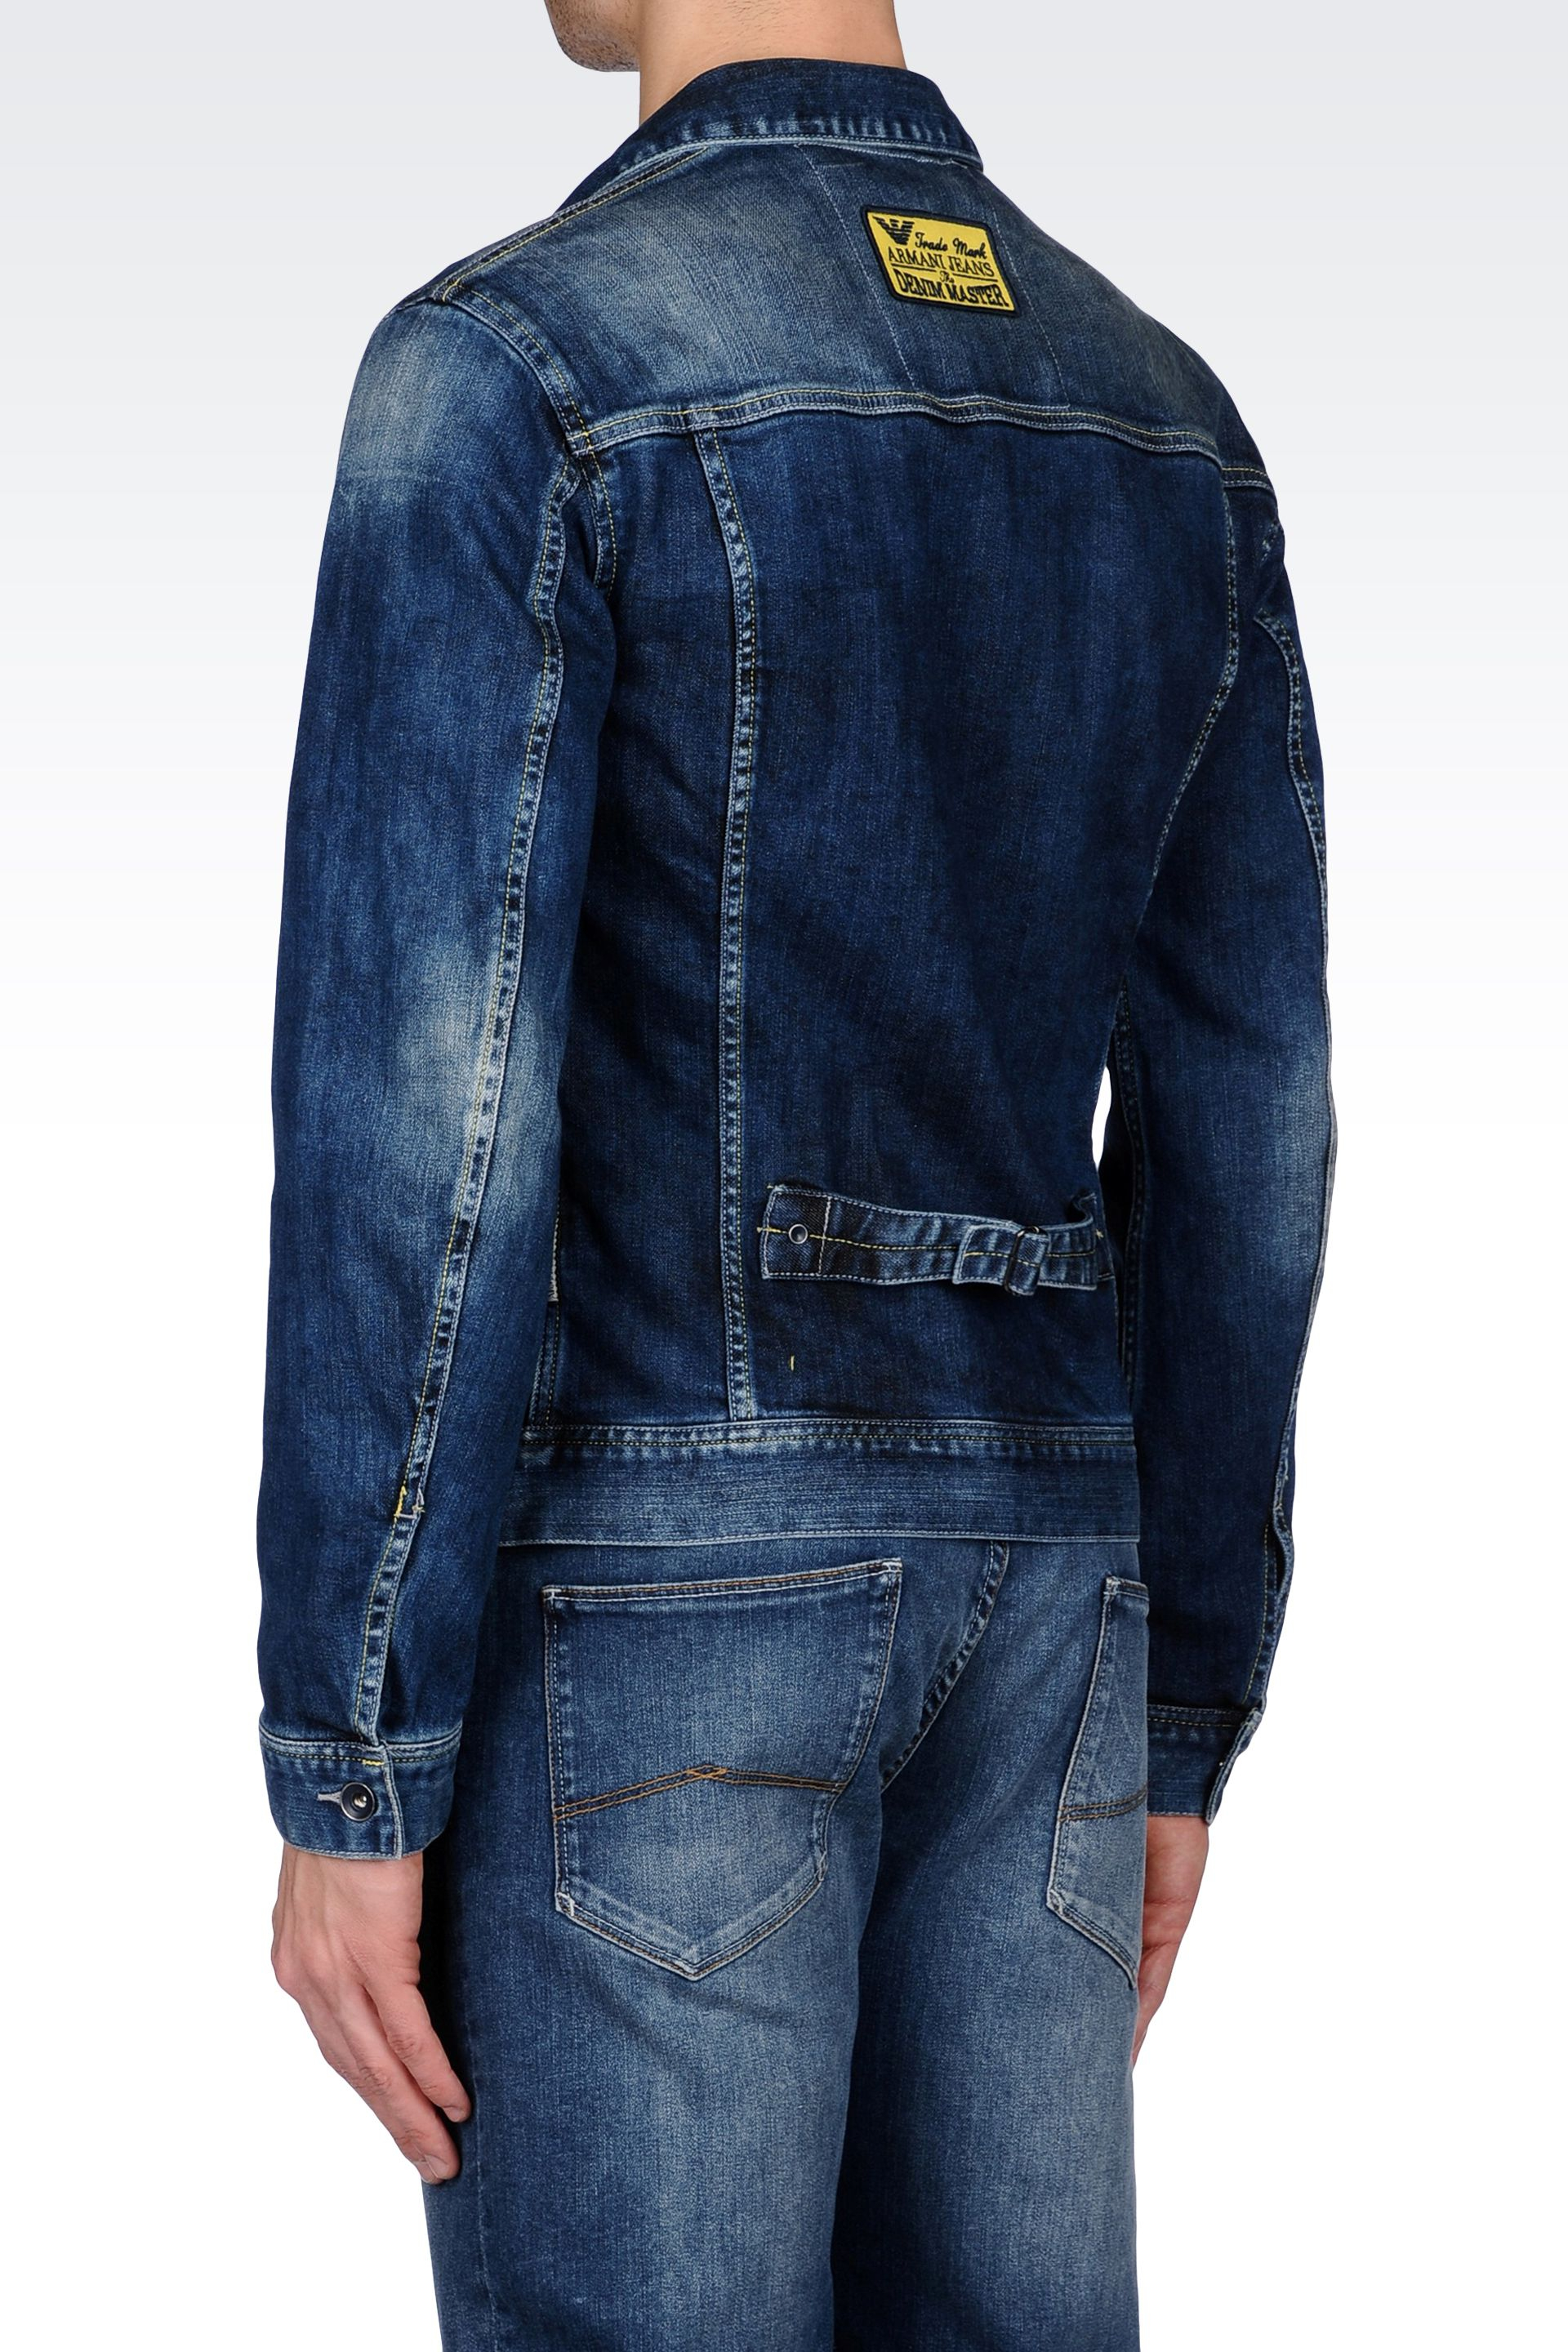 lyst armani jeans jacket in medium wash denim in blue. Black Bedroom Furniture Sets. Home Design Ideas